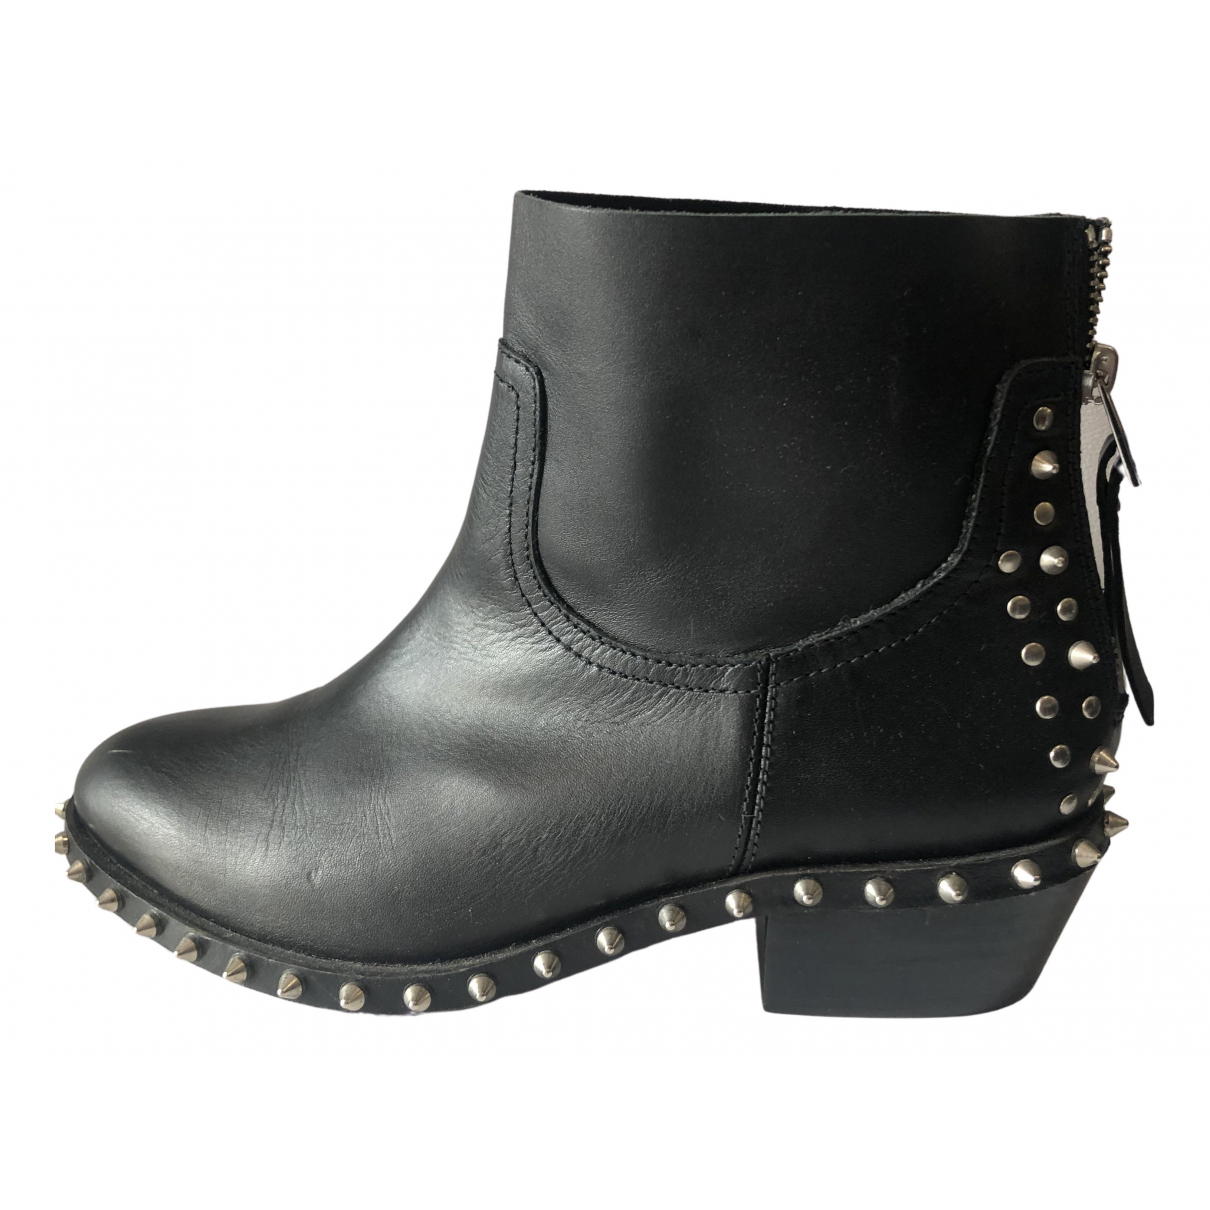 Zadig & Voltaire N Black Leather Ankle boots for Women 38 EU